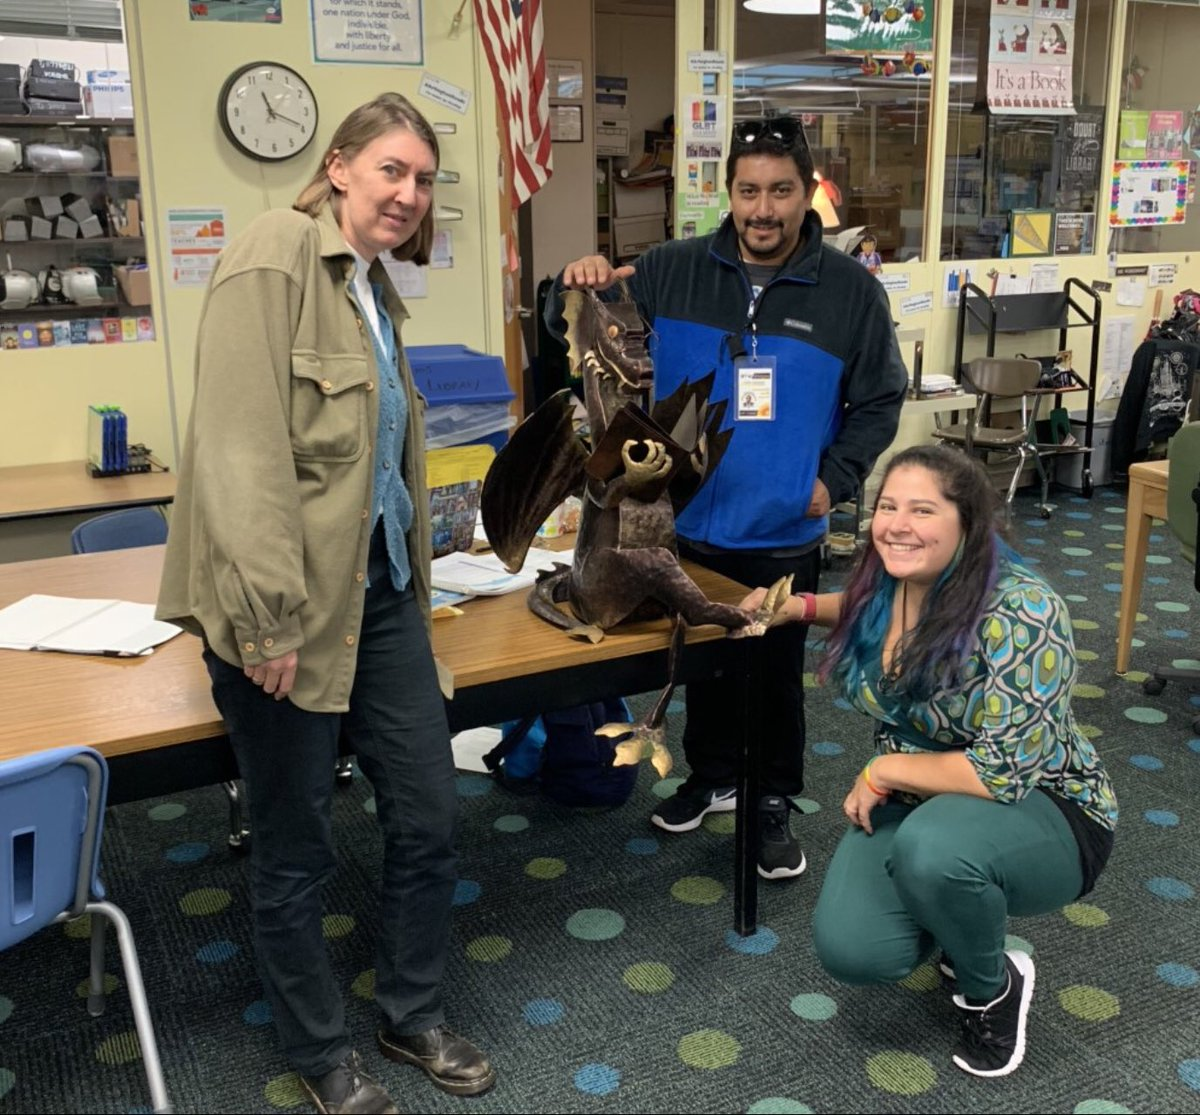 Thanks so much to TJMS alum and Fleet parent Mr.Lionel Cardenas for donating this reading dragon to our library! <a target='_blank' href='http://twitter.com/APSLibrarians'>@APSLibrarians</a> <a target='_blank' href='http://twitter.com/APSVirginia'>@APSVirginia</a> <a target='_blank' href='http://search.twitter.com/search?q=tjmsreads'><a target='_blank' href='https://twitter.com/hashtag/tjmsreads?src=hash'>#tjmsreads</a></a> <a target='_blank' href='http://twitter.com/JeffersonIBMYP'>@JeffersonIBMYP</a> <a target='_blank' href='https://t.co/YA6iuTuDwY'>https://t.co/YA6iuTuDwY</a>